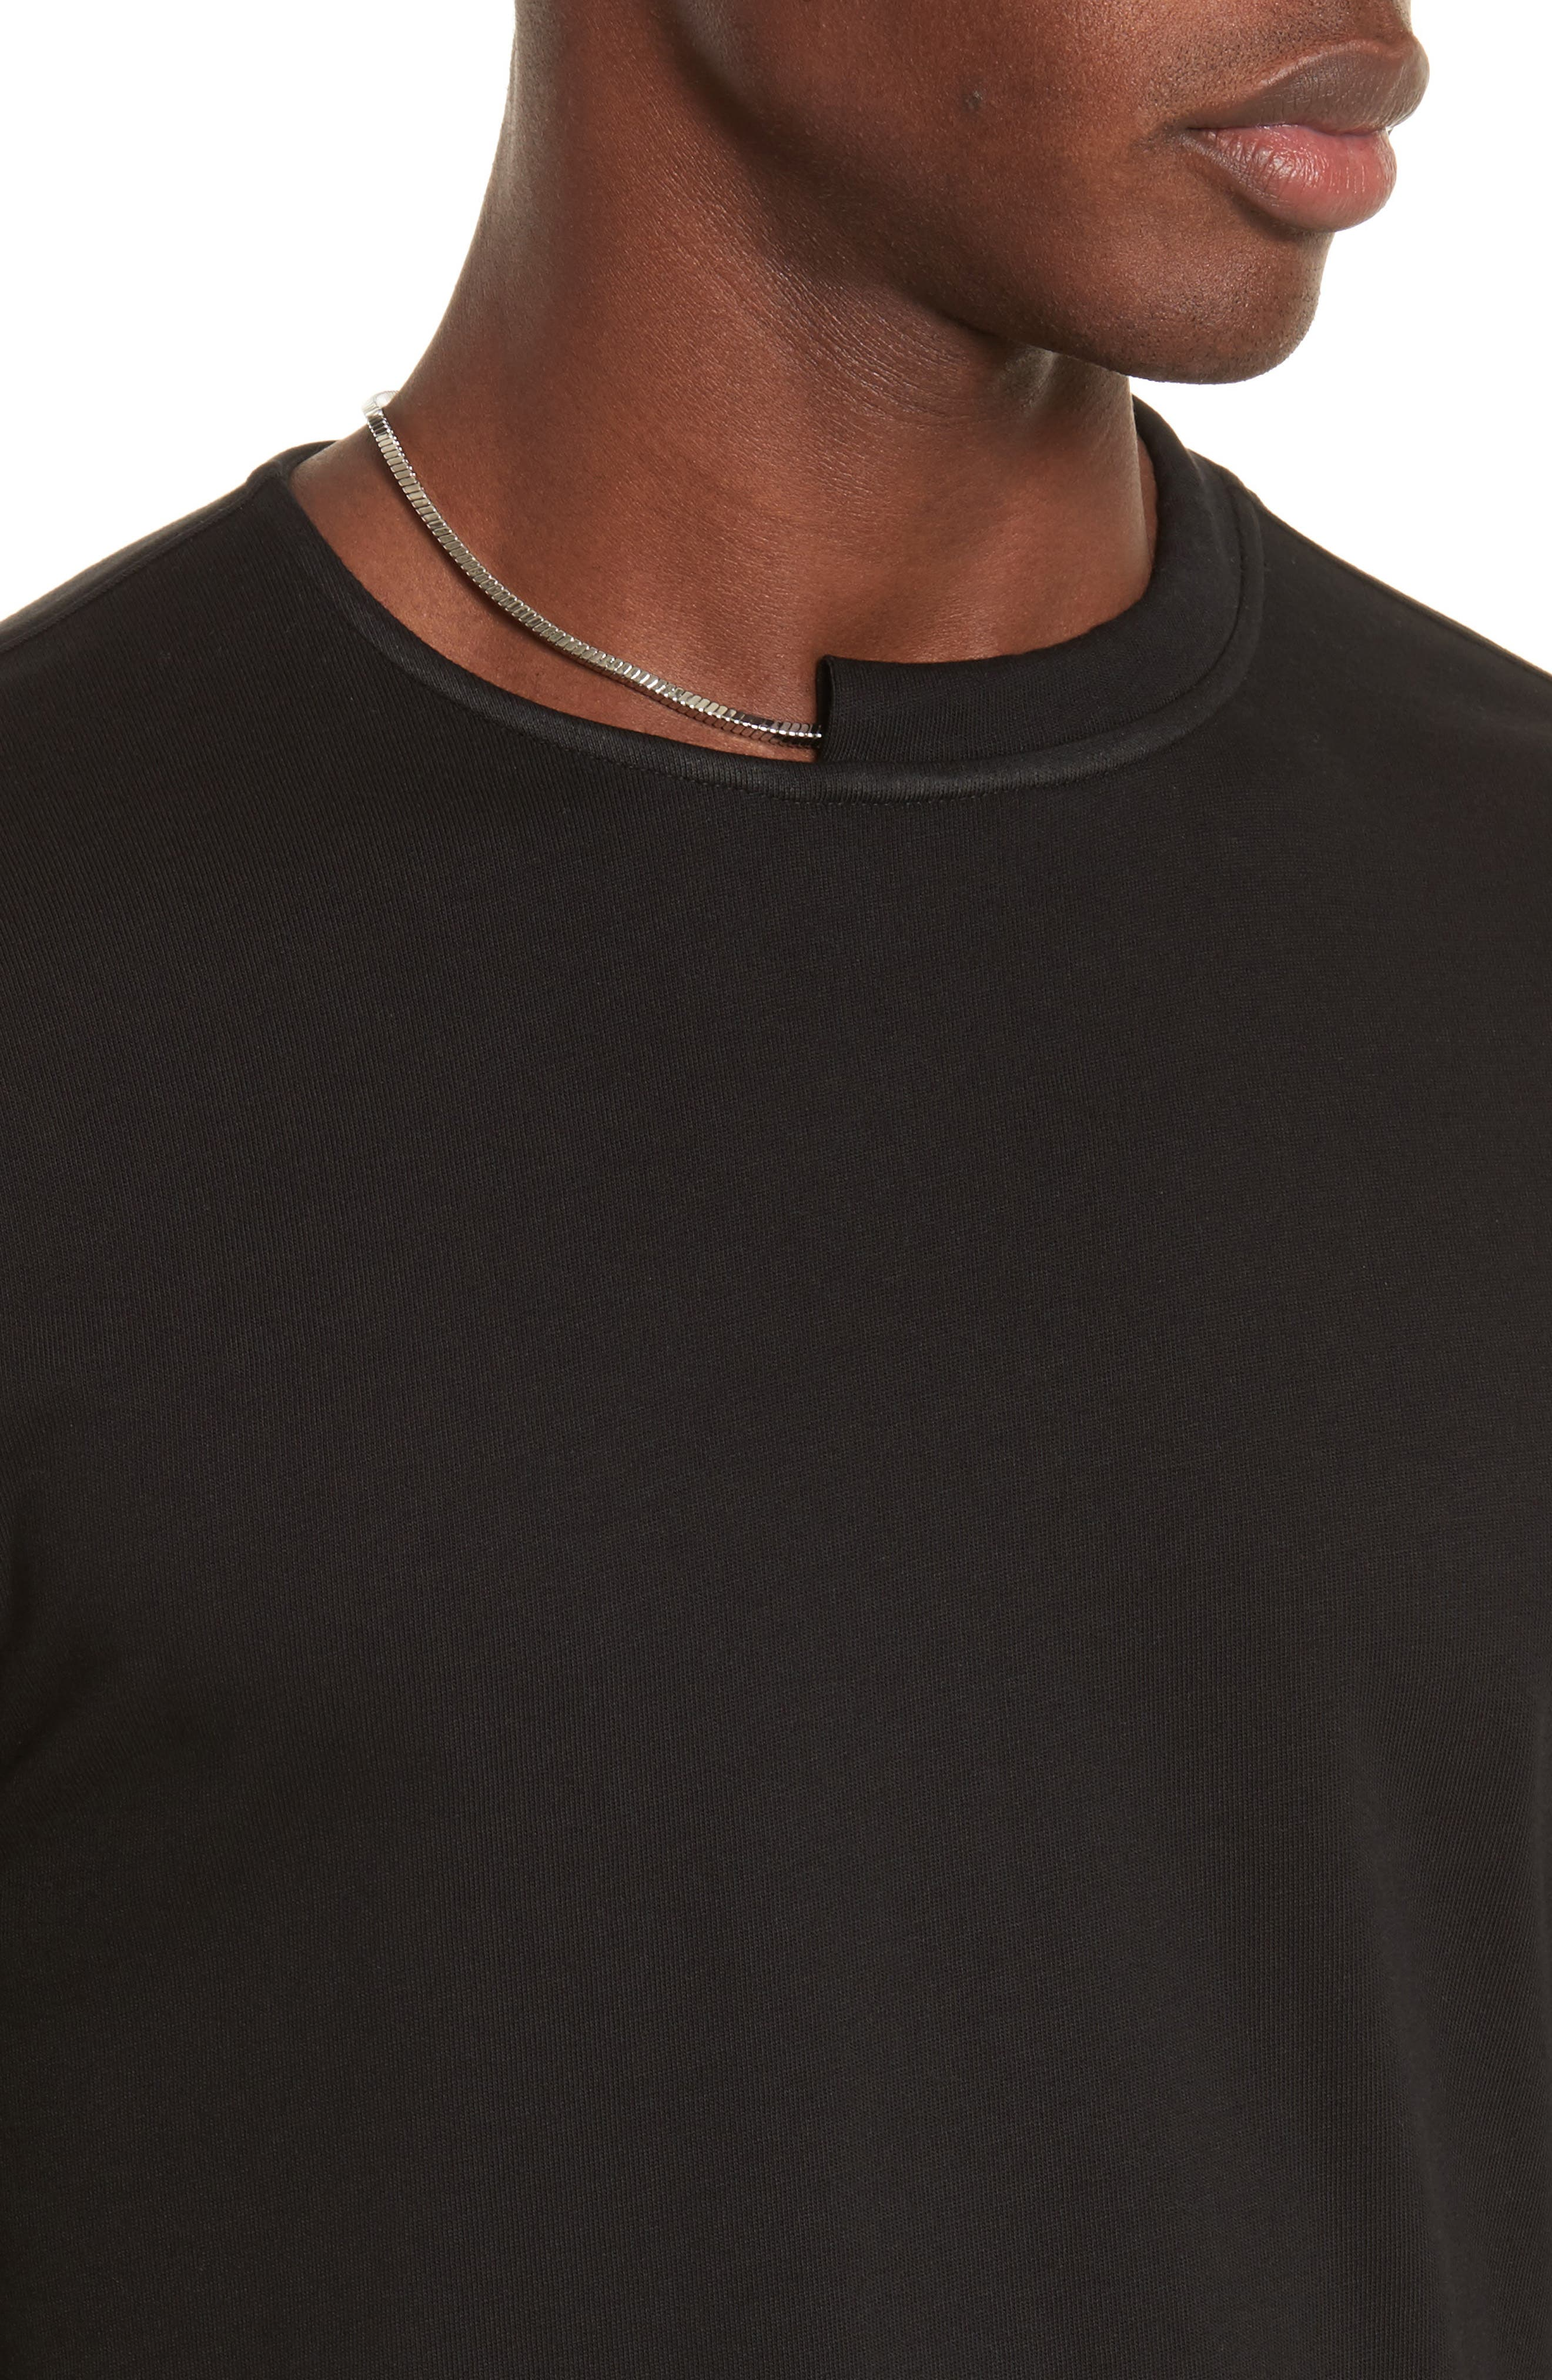 Alternate Image 4  - Helmut Lang Necklace Crewneck T-Shirt